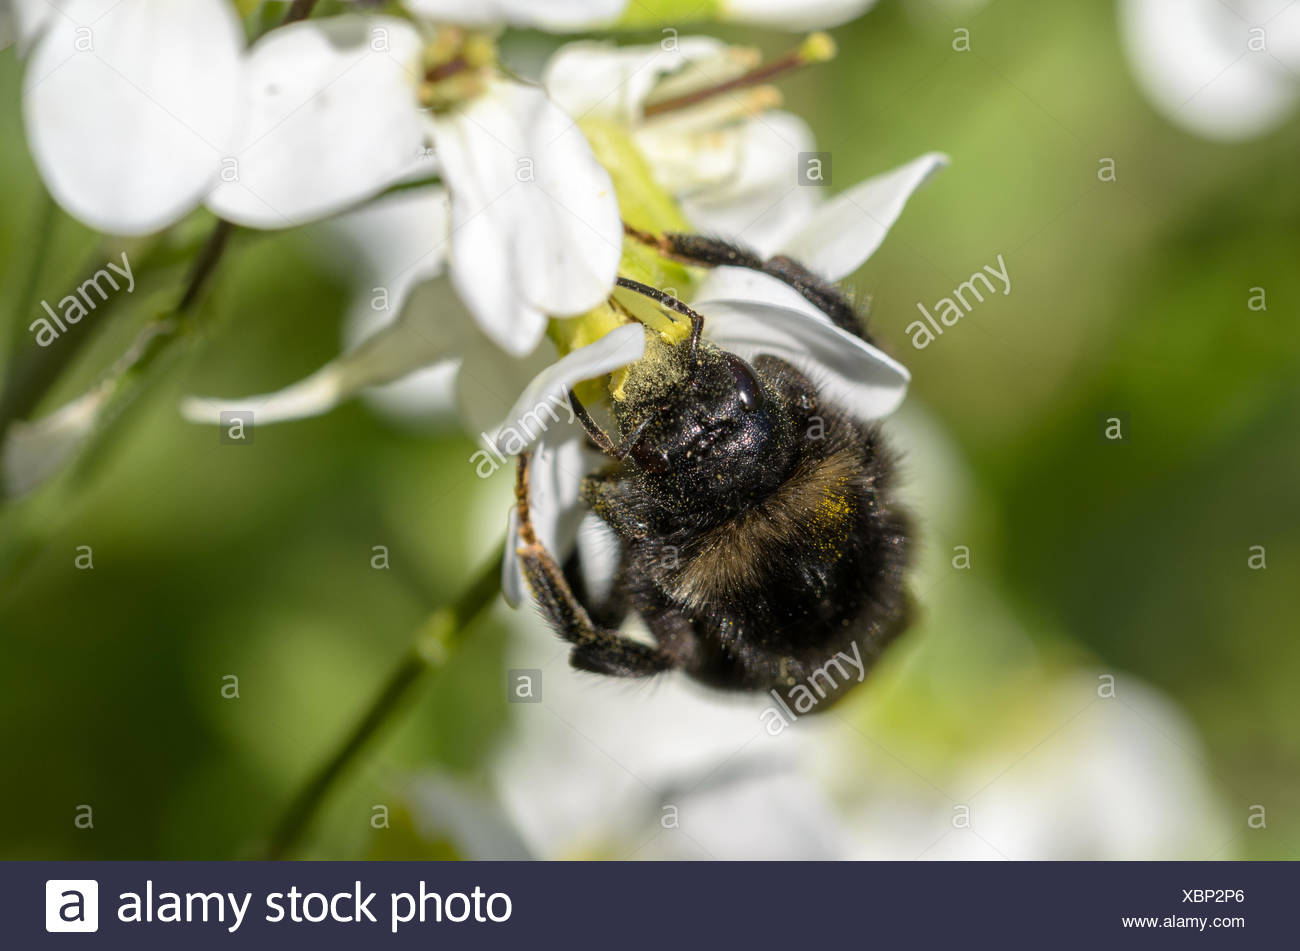 Bumblebee searches nectar - Stock Image